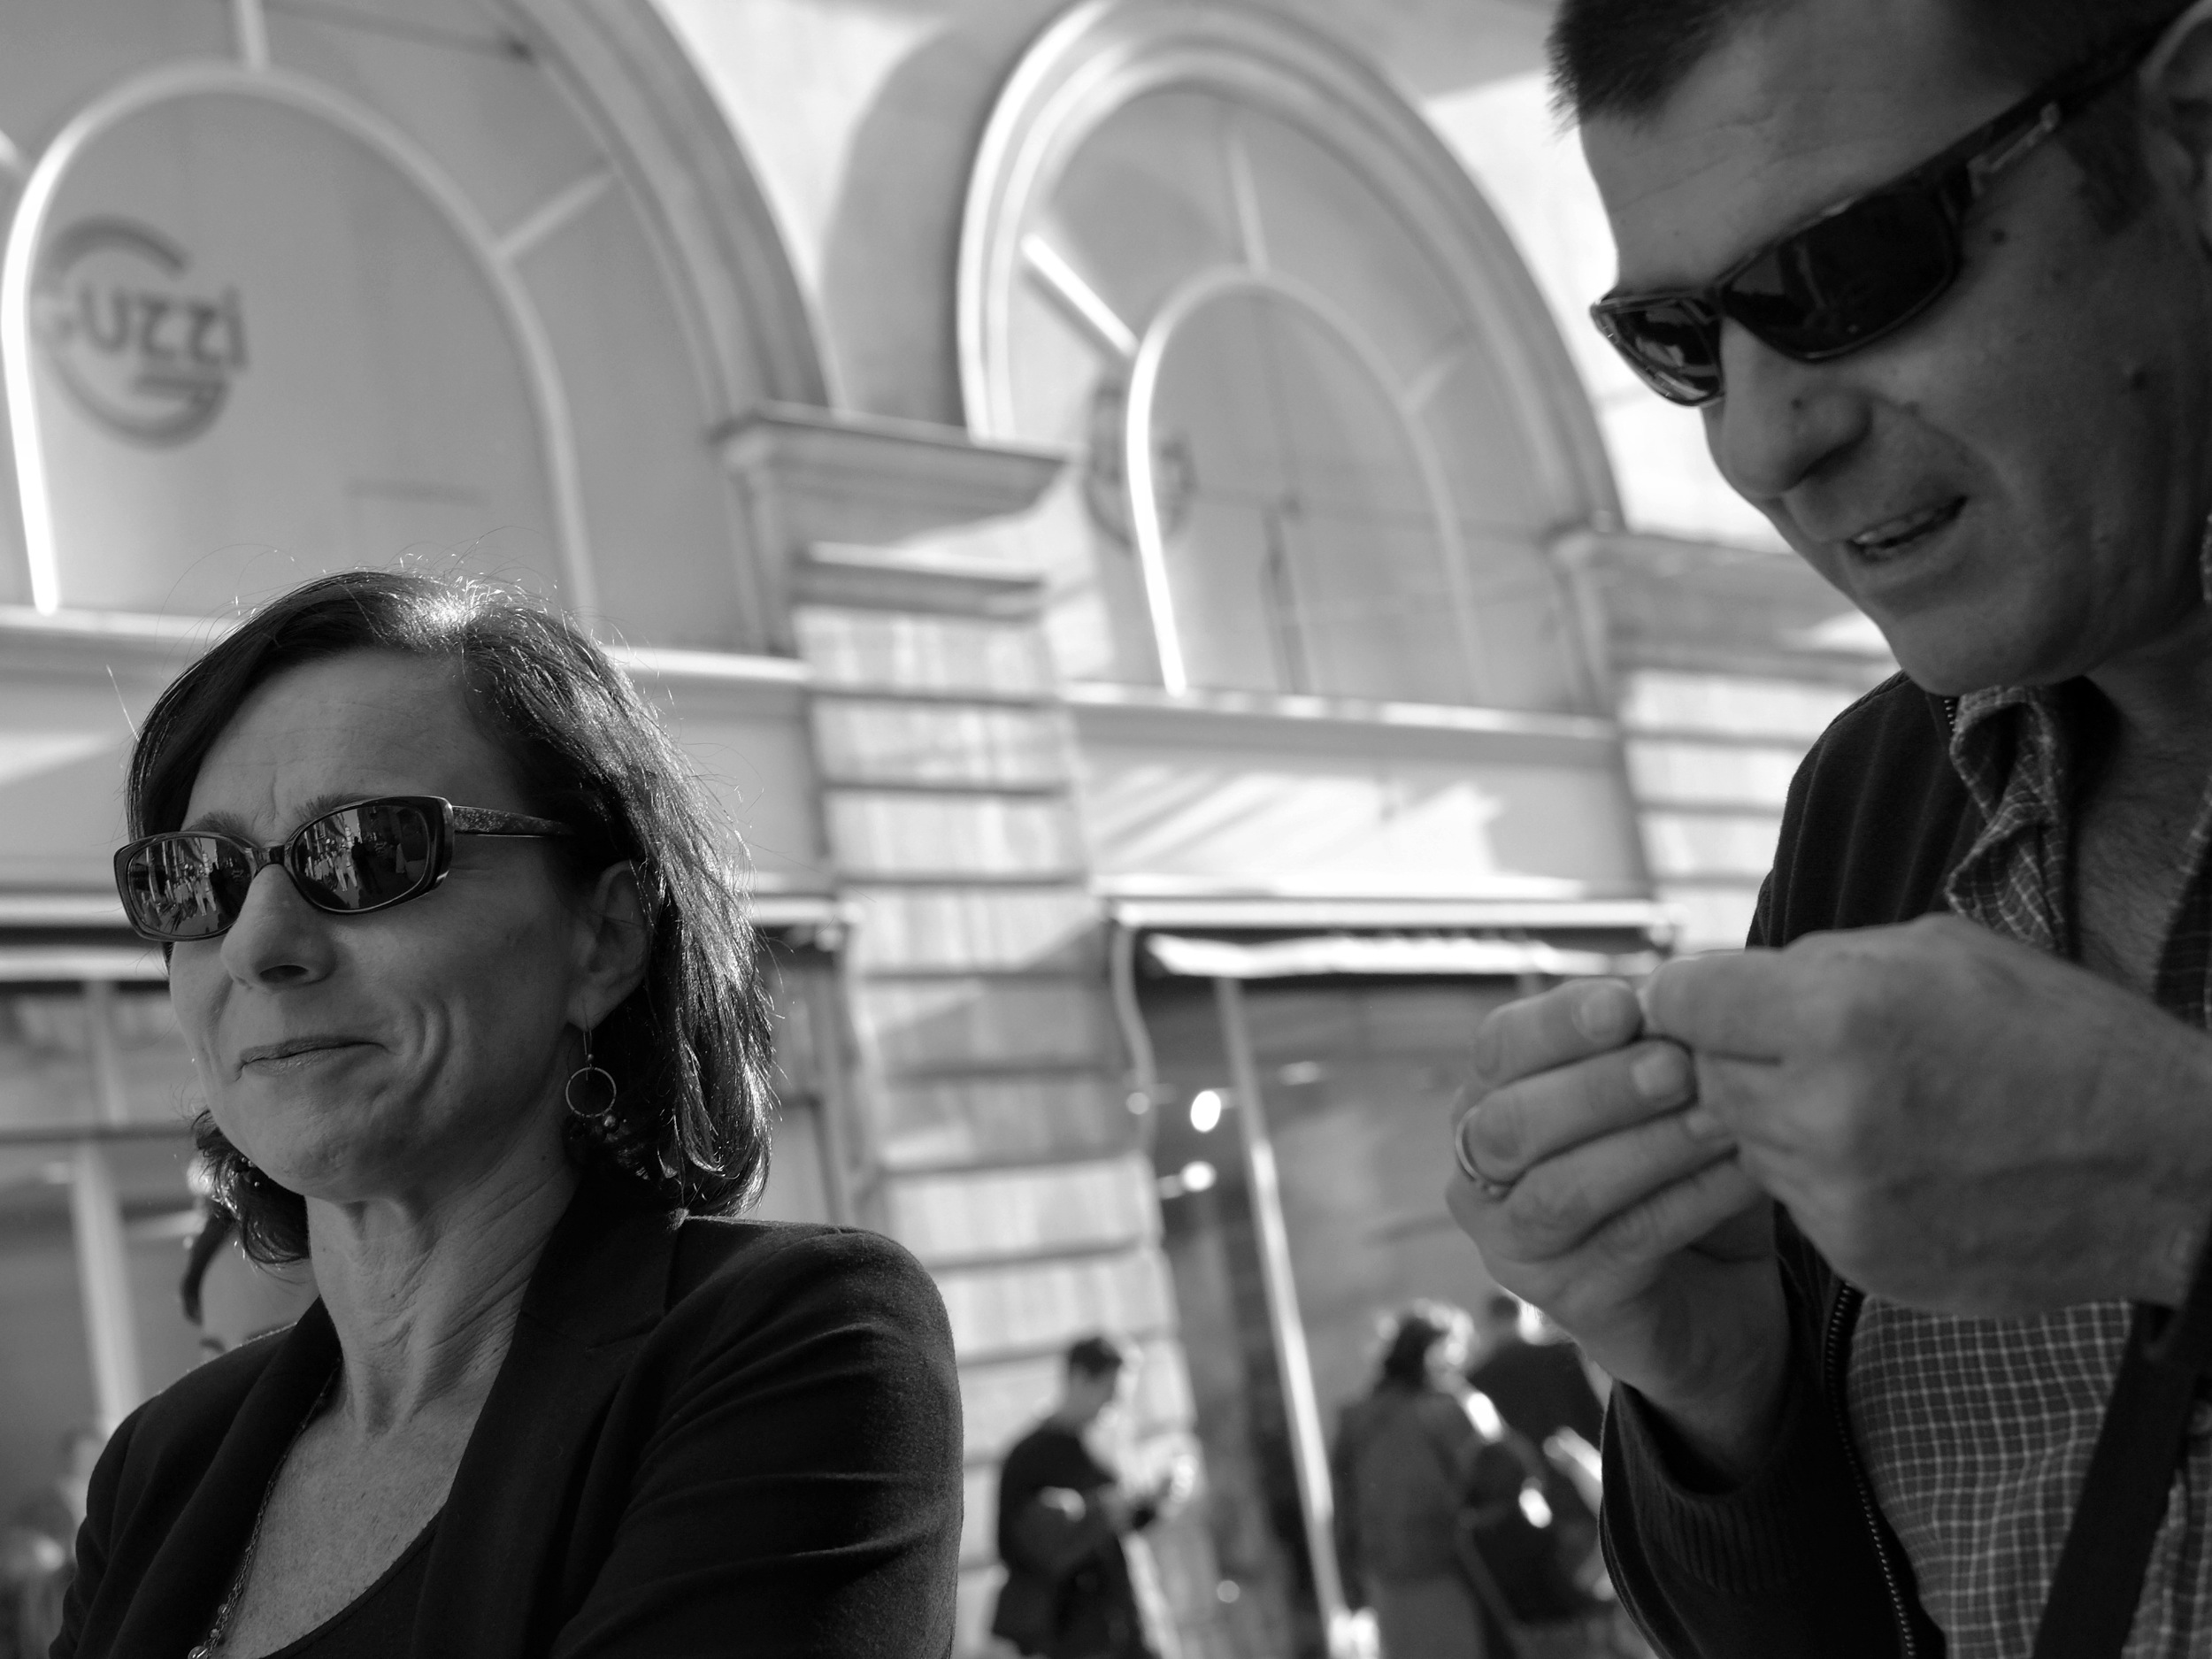 Couple with sunglasses walking in Nantes - Fuji X-Pro1